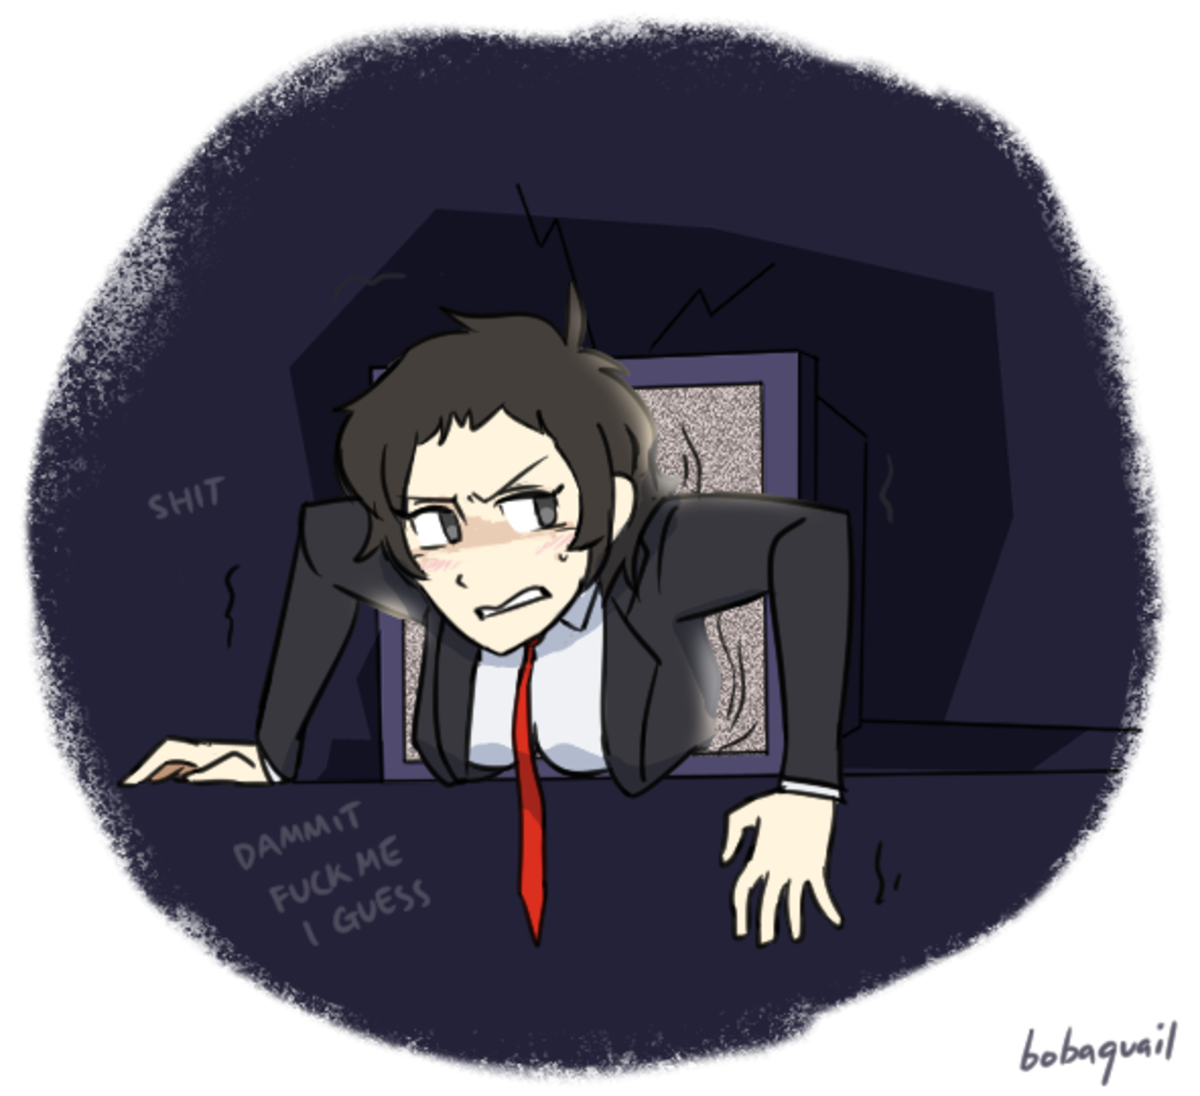 Adachi. .. Psycho woman throwing people into TVs because they won't date her is still psycho .